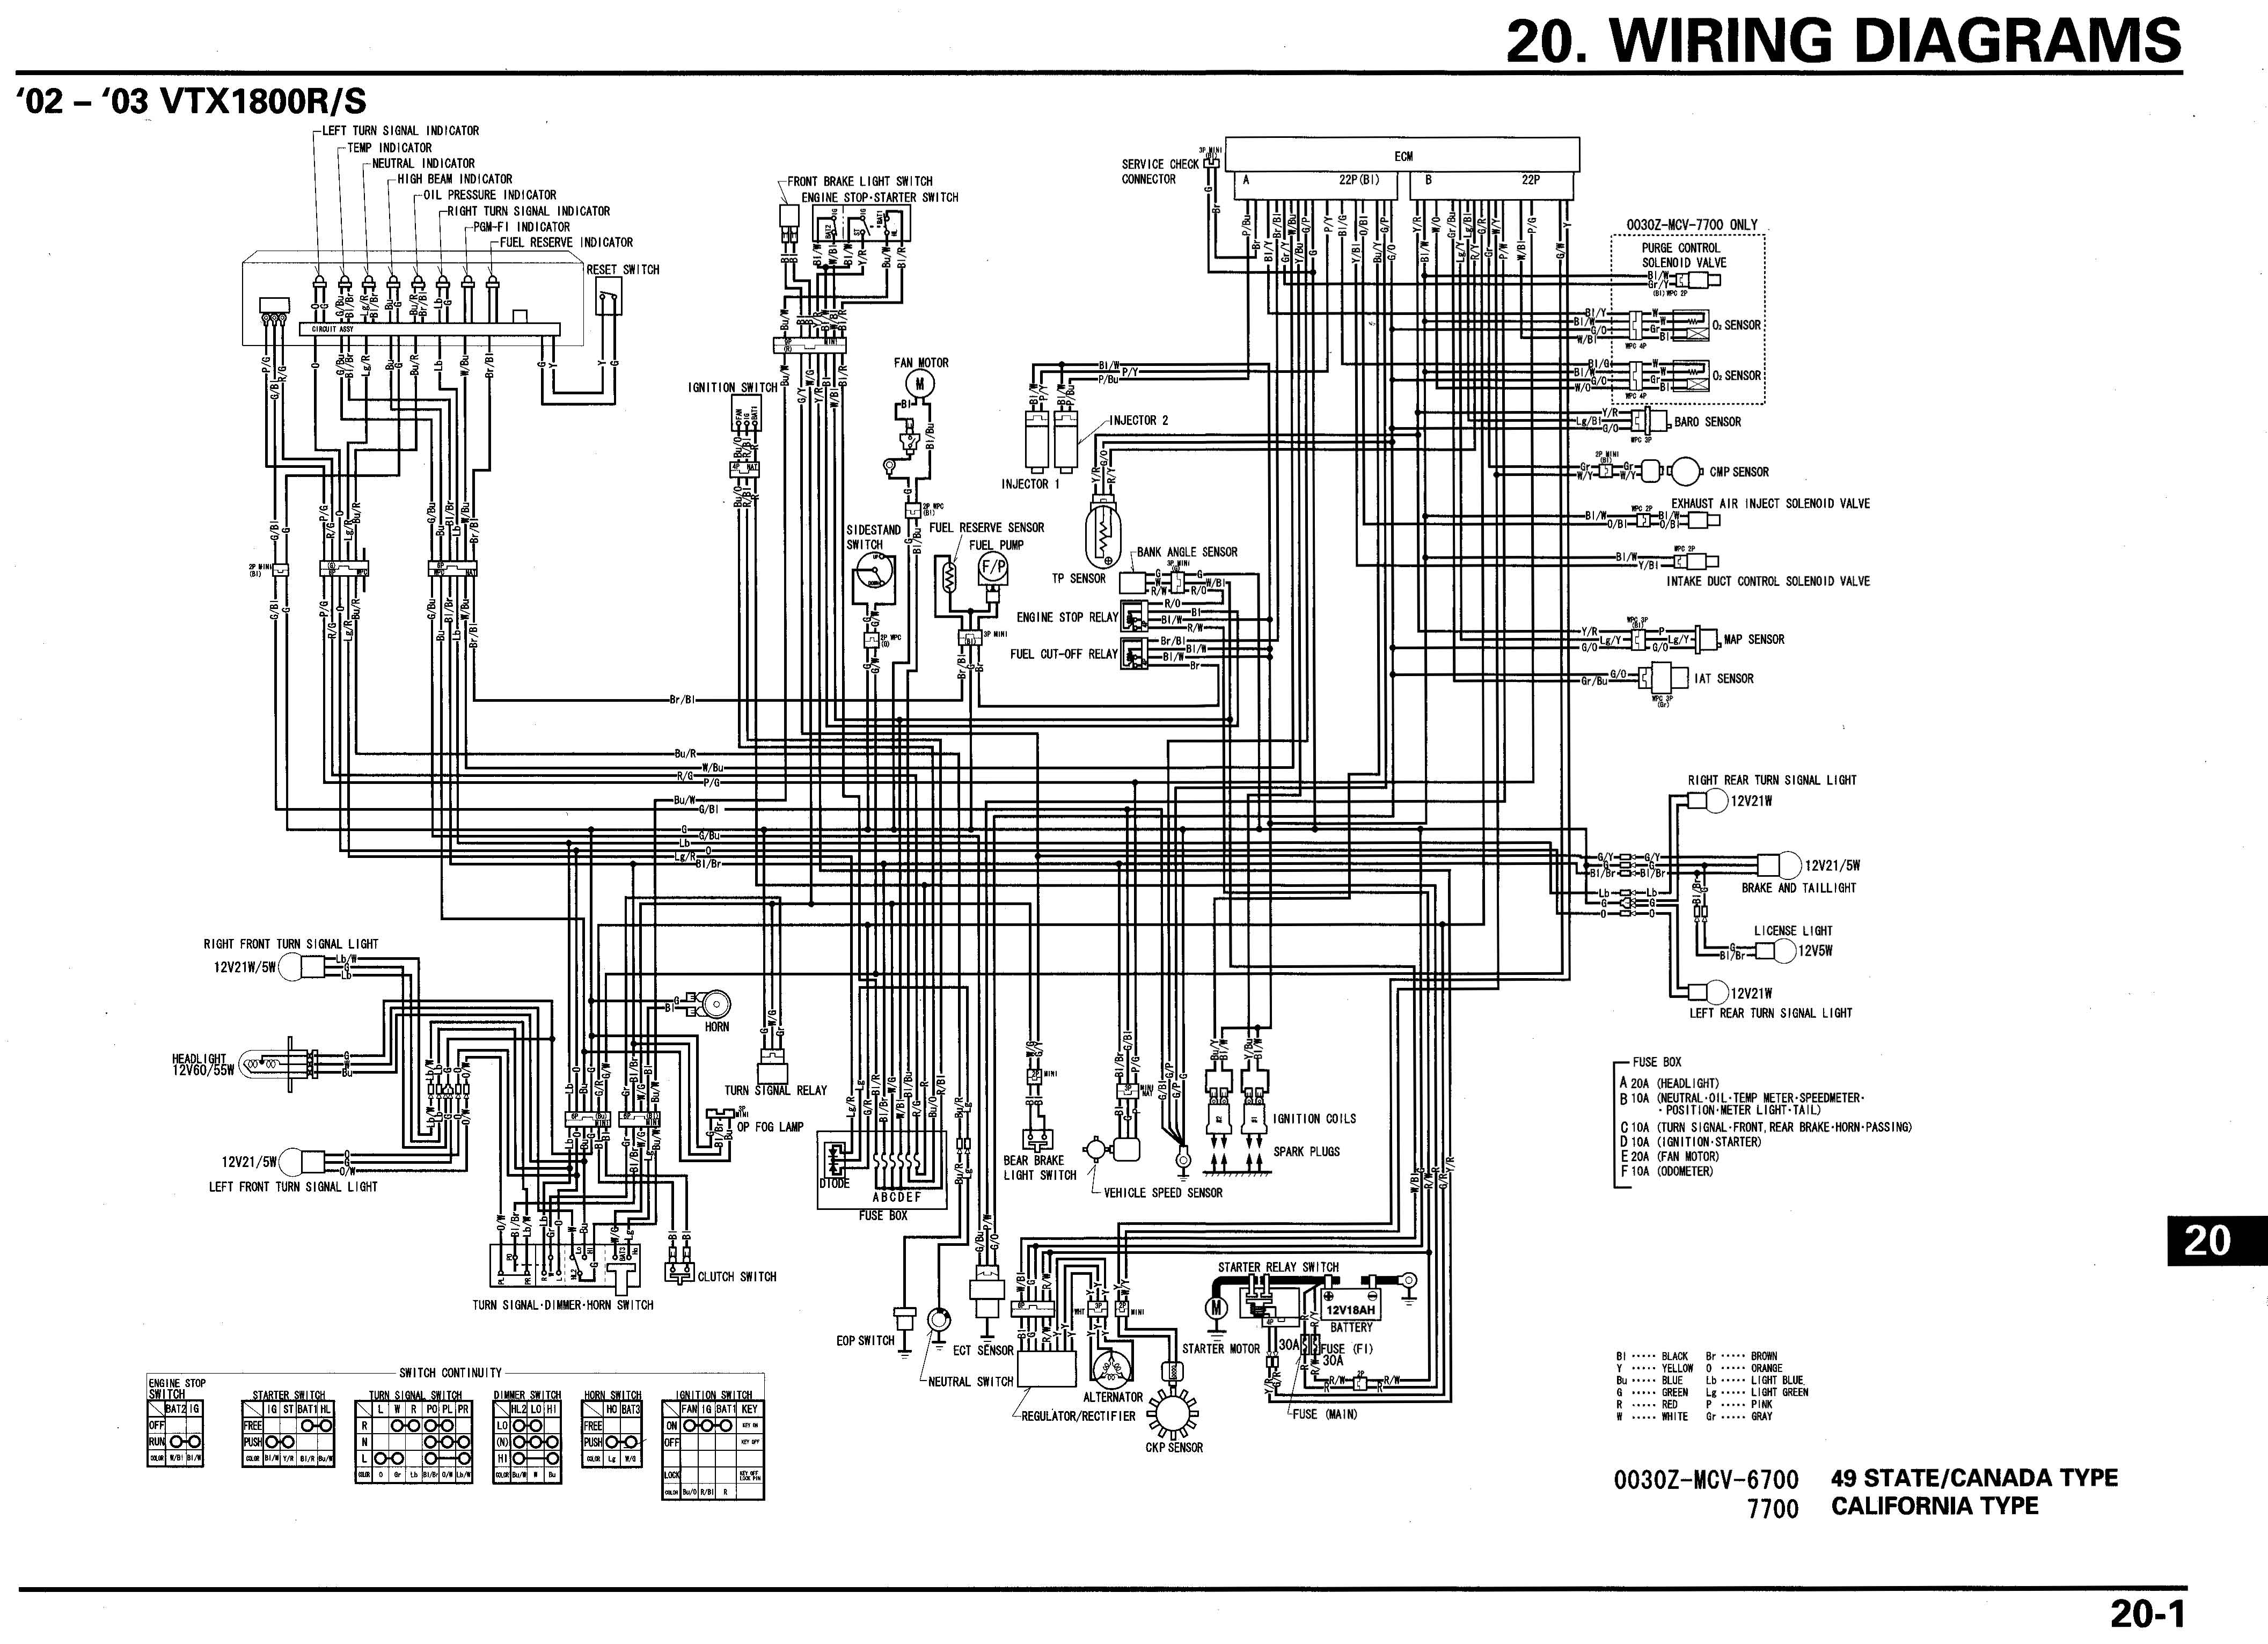 motorcycle wire schematics bareass choppers motorcycle tech pages rh tech bareasschoppers com 2009 honda vtx wiring diagram honda vtx 1800 wiring diagram